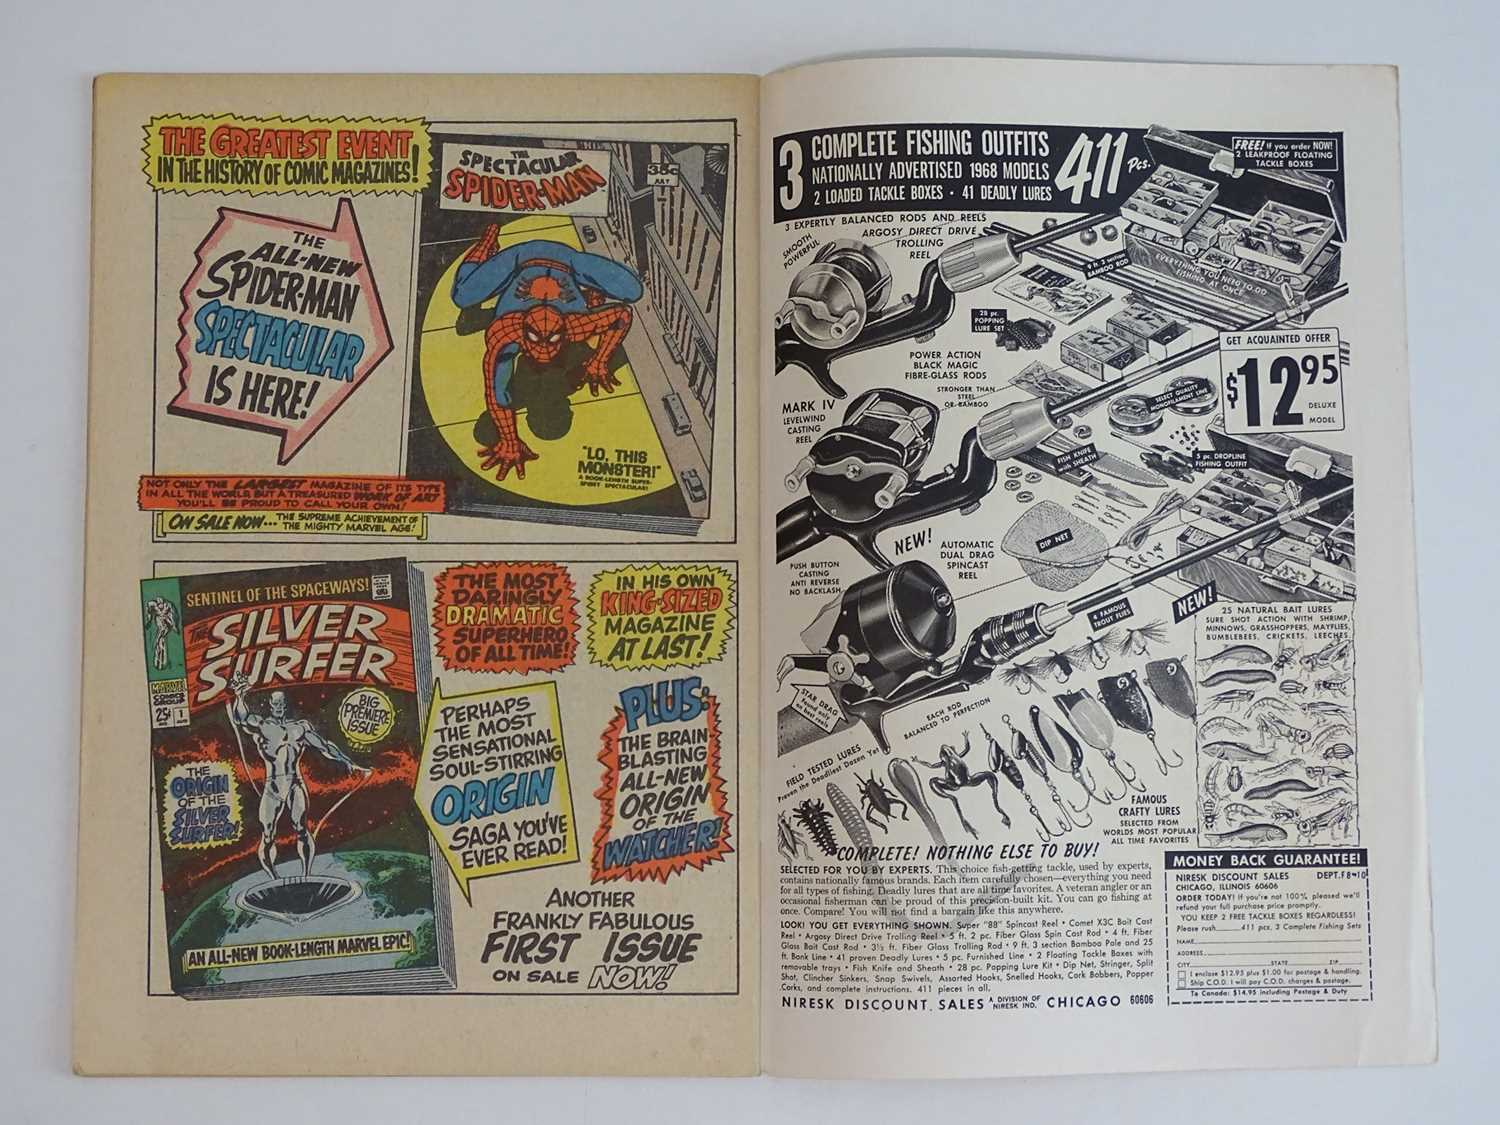 AMAZING SPIDER-MAN #63 - (1968 - MARVEL - UK Cover Price) - The original Vulture (Adrian Toomes) and - Image 4 of 9